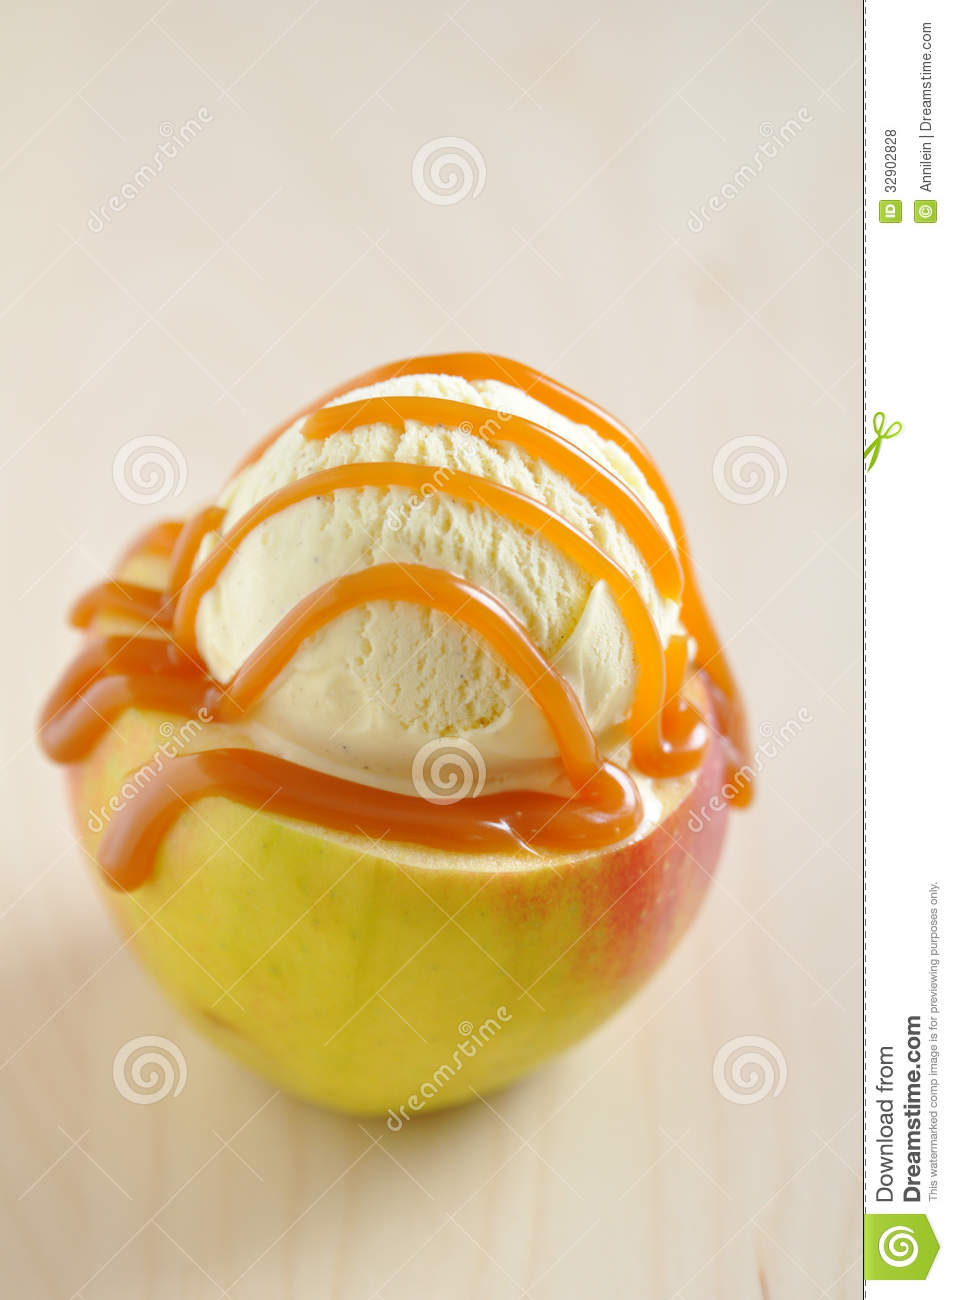 Caramel Apple Sundae Royalty Free Stock Photos - Image: 32902828